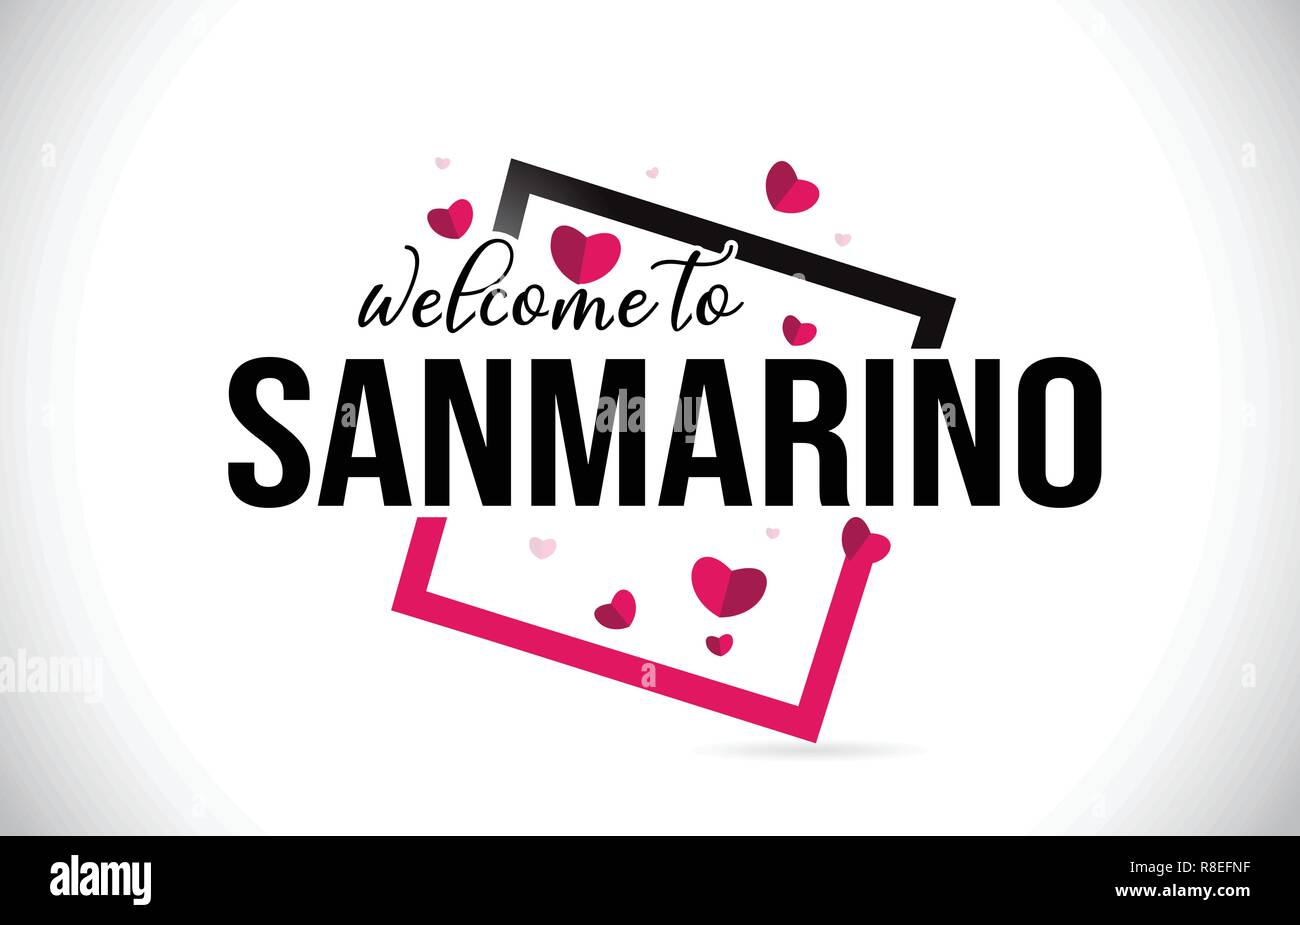 SanMarino Welcome To Word Text with Handwritten Font and  Red Hearts Square Design Illustration Vector. - Stock Image